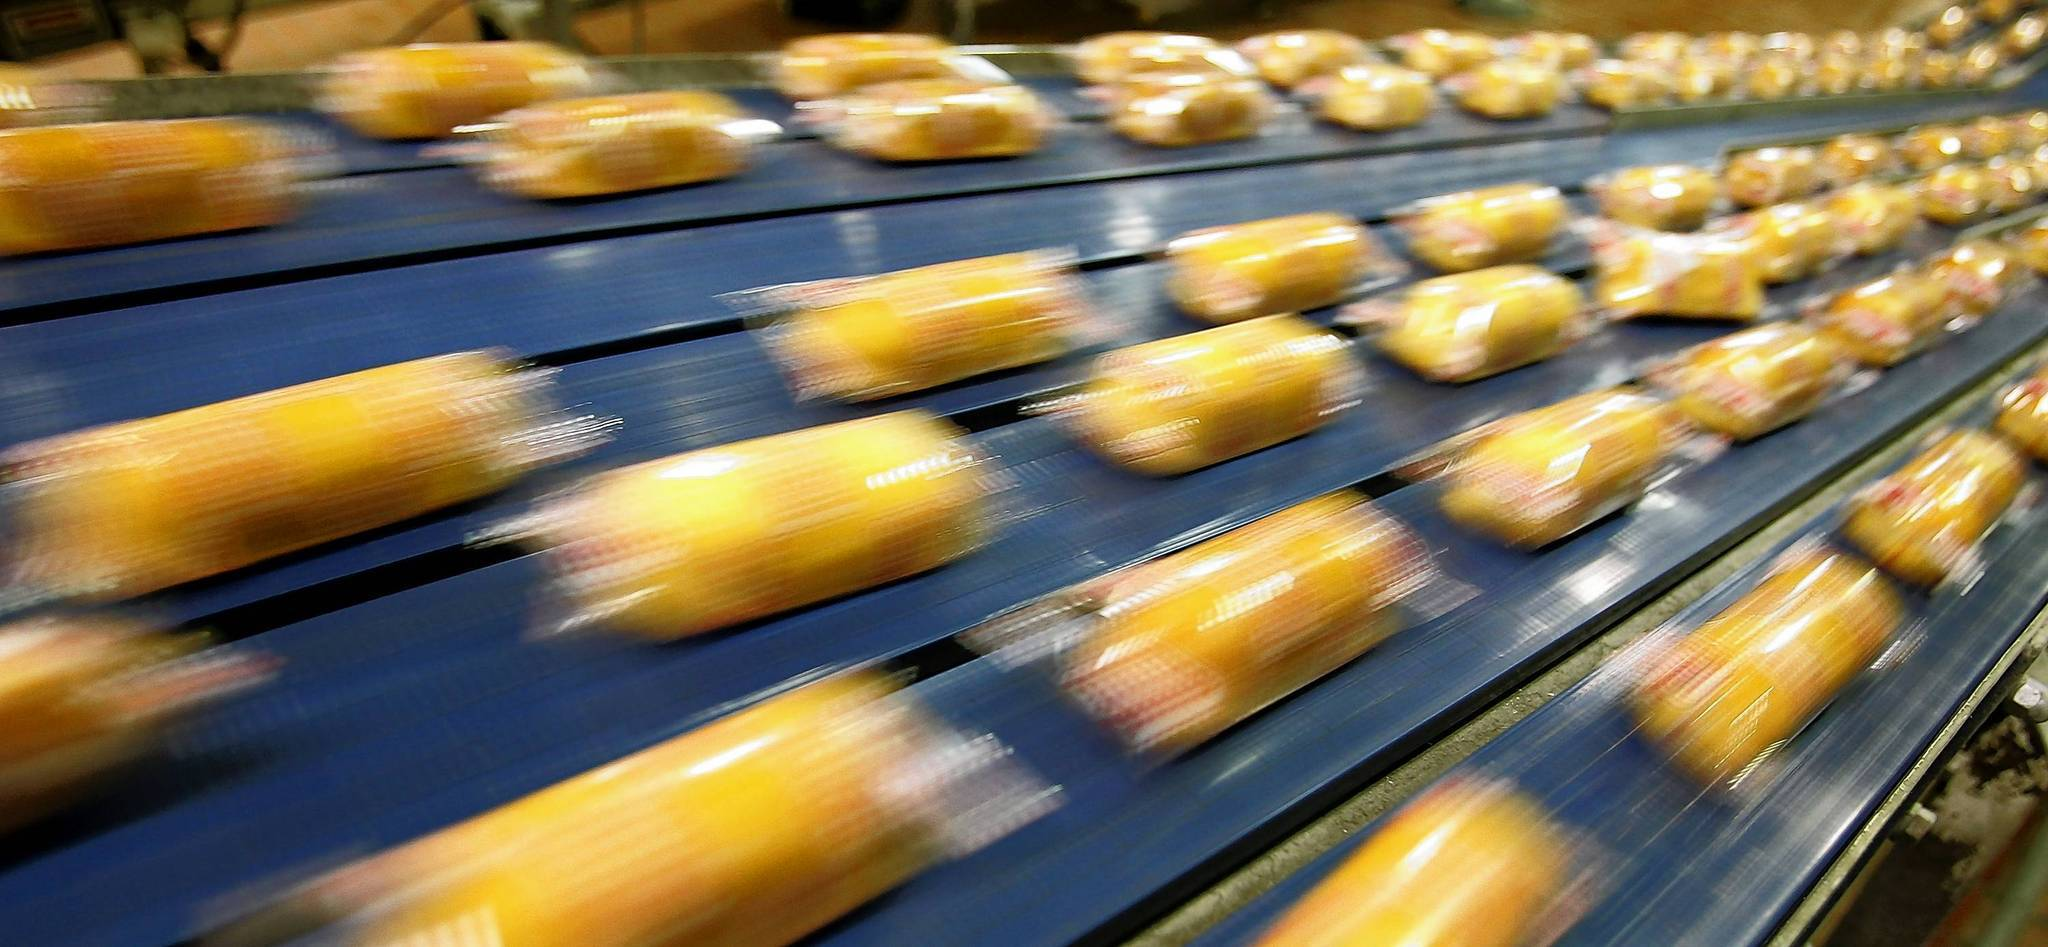 Hostess brand Twinkies move through a packaging line at a plant in Schiller Park. The parent company says it will be forced to liquidate if union members dont approve the latest batch of concessions, which are up for a vote this week.